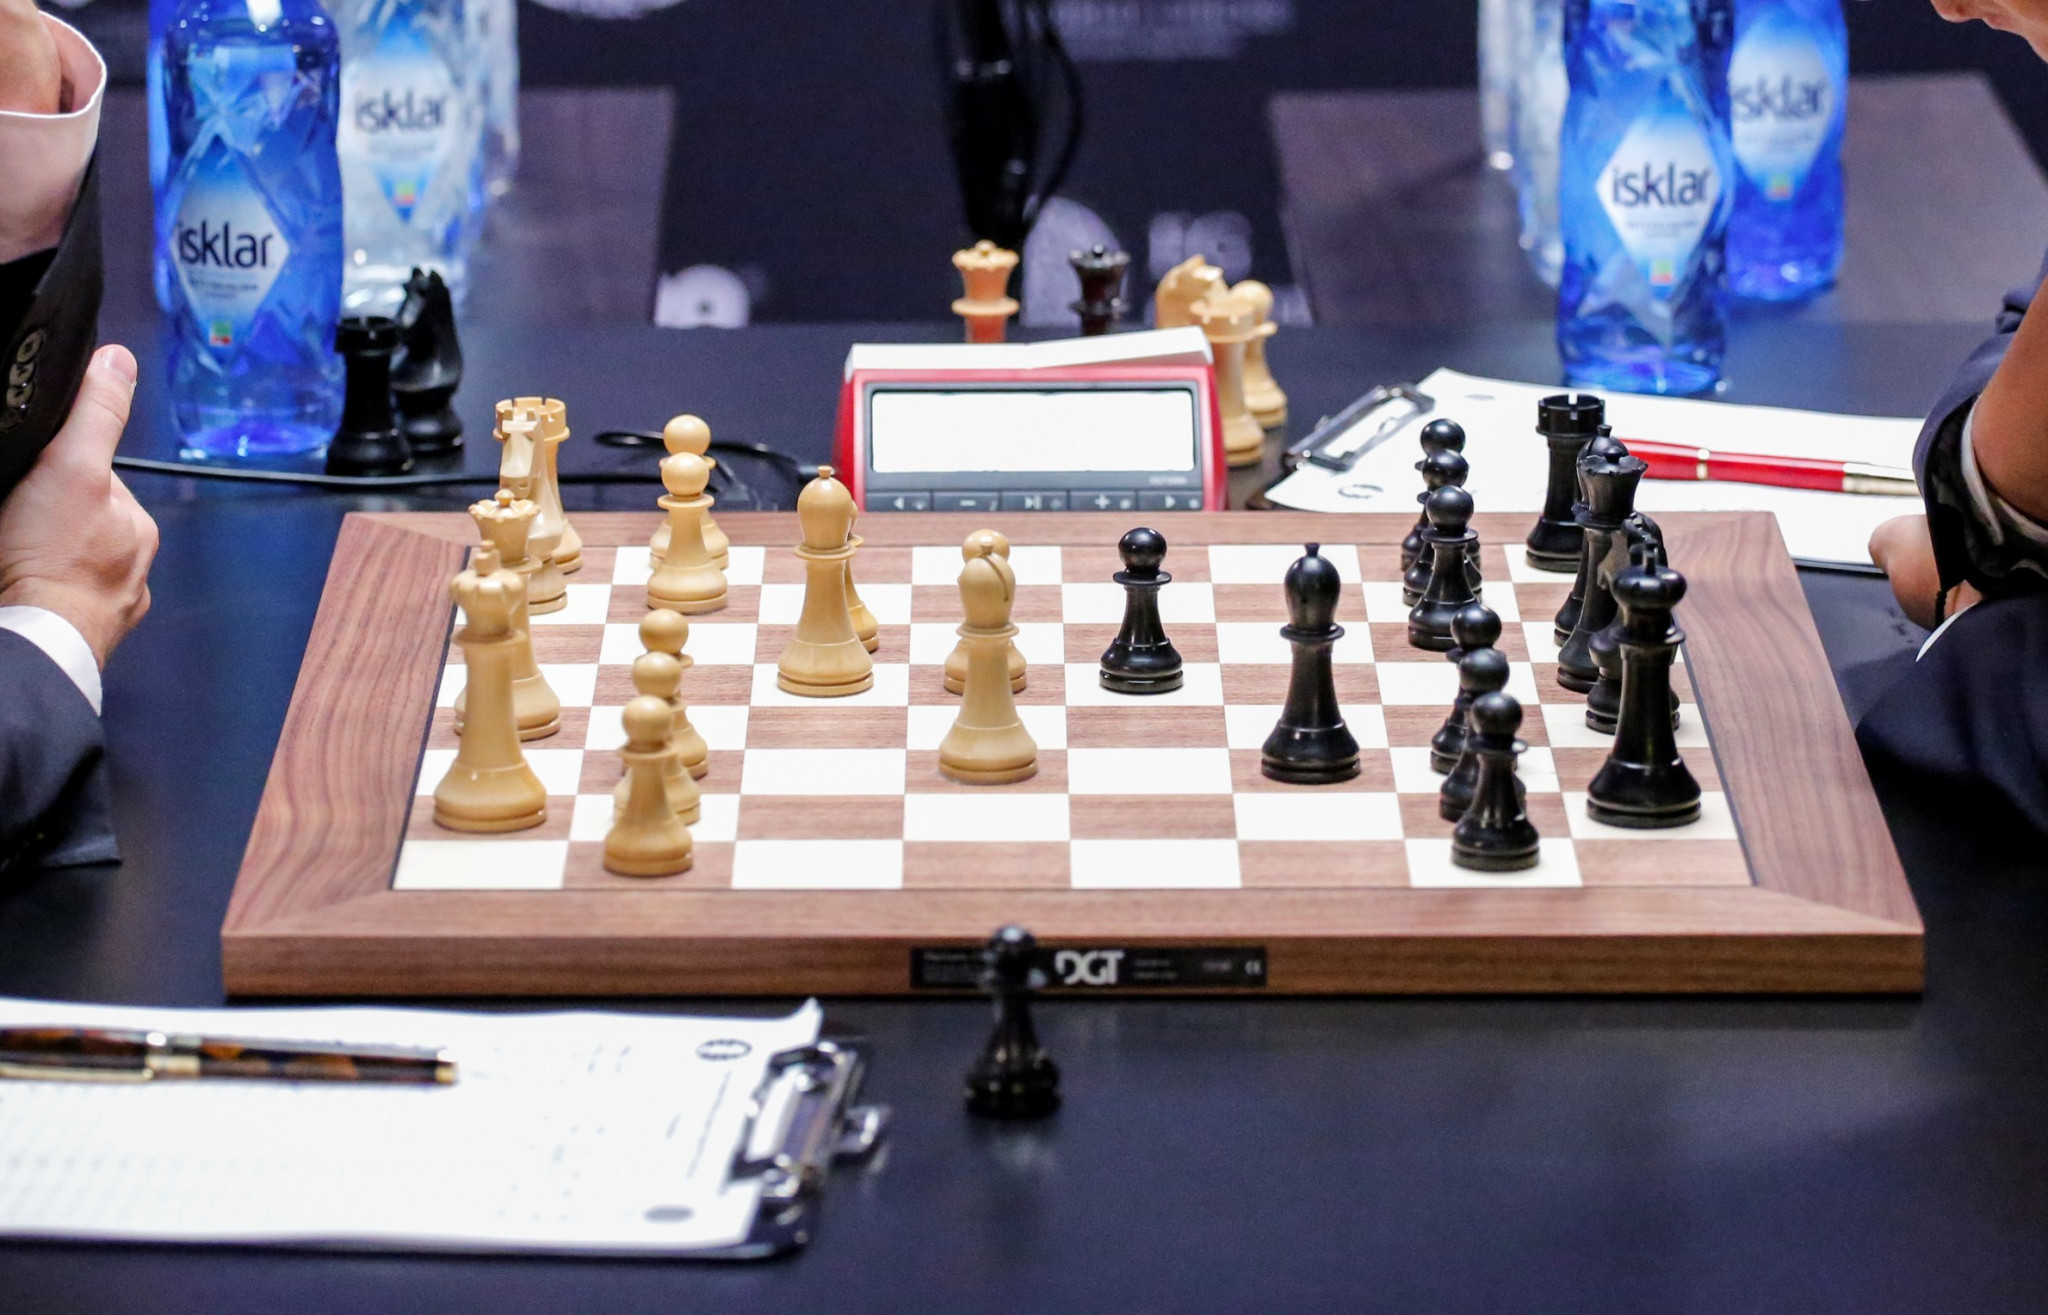 Demchenko wins European Individual Chess Championship title after final round draw